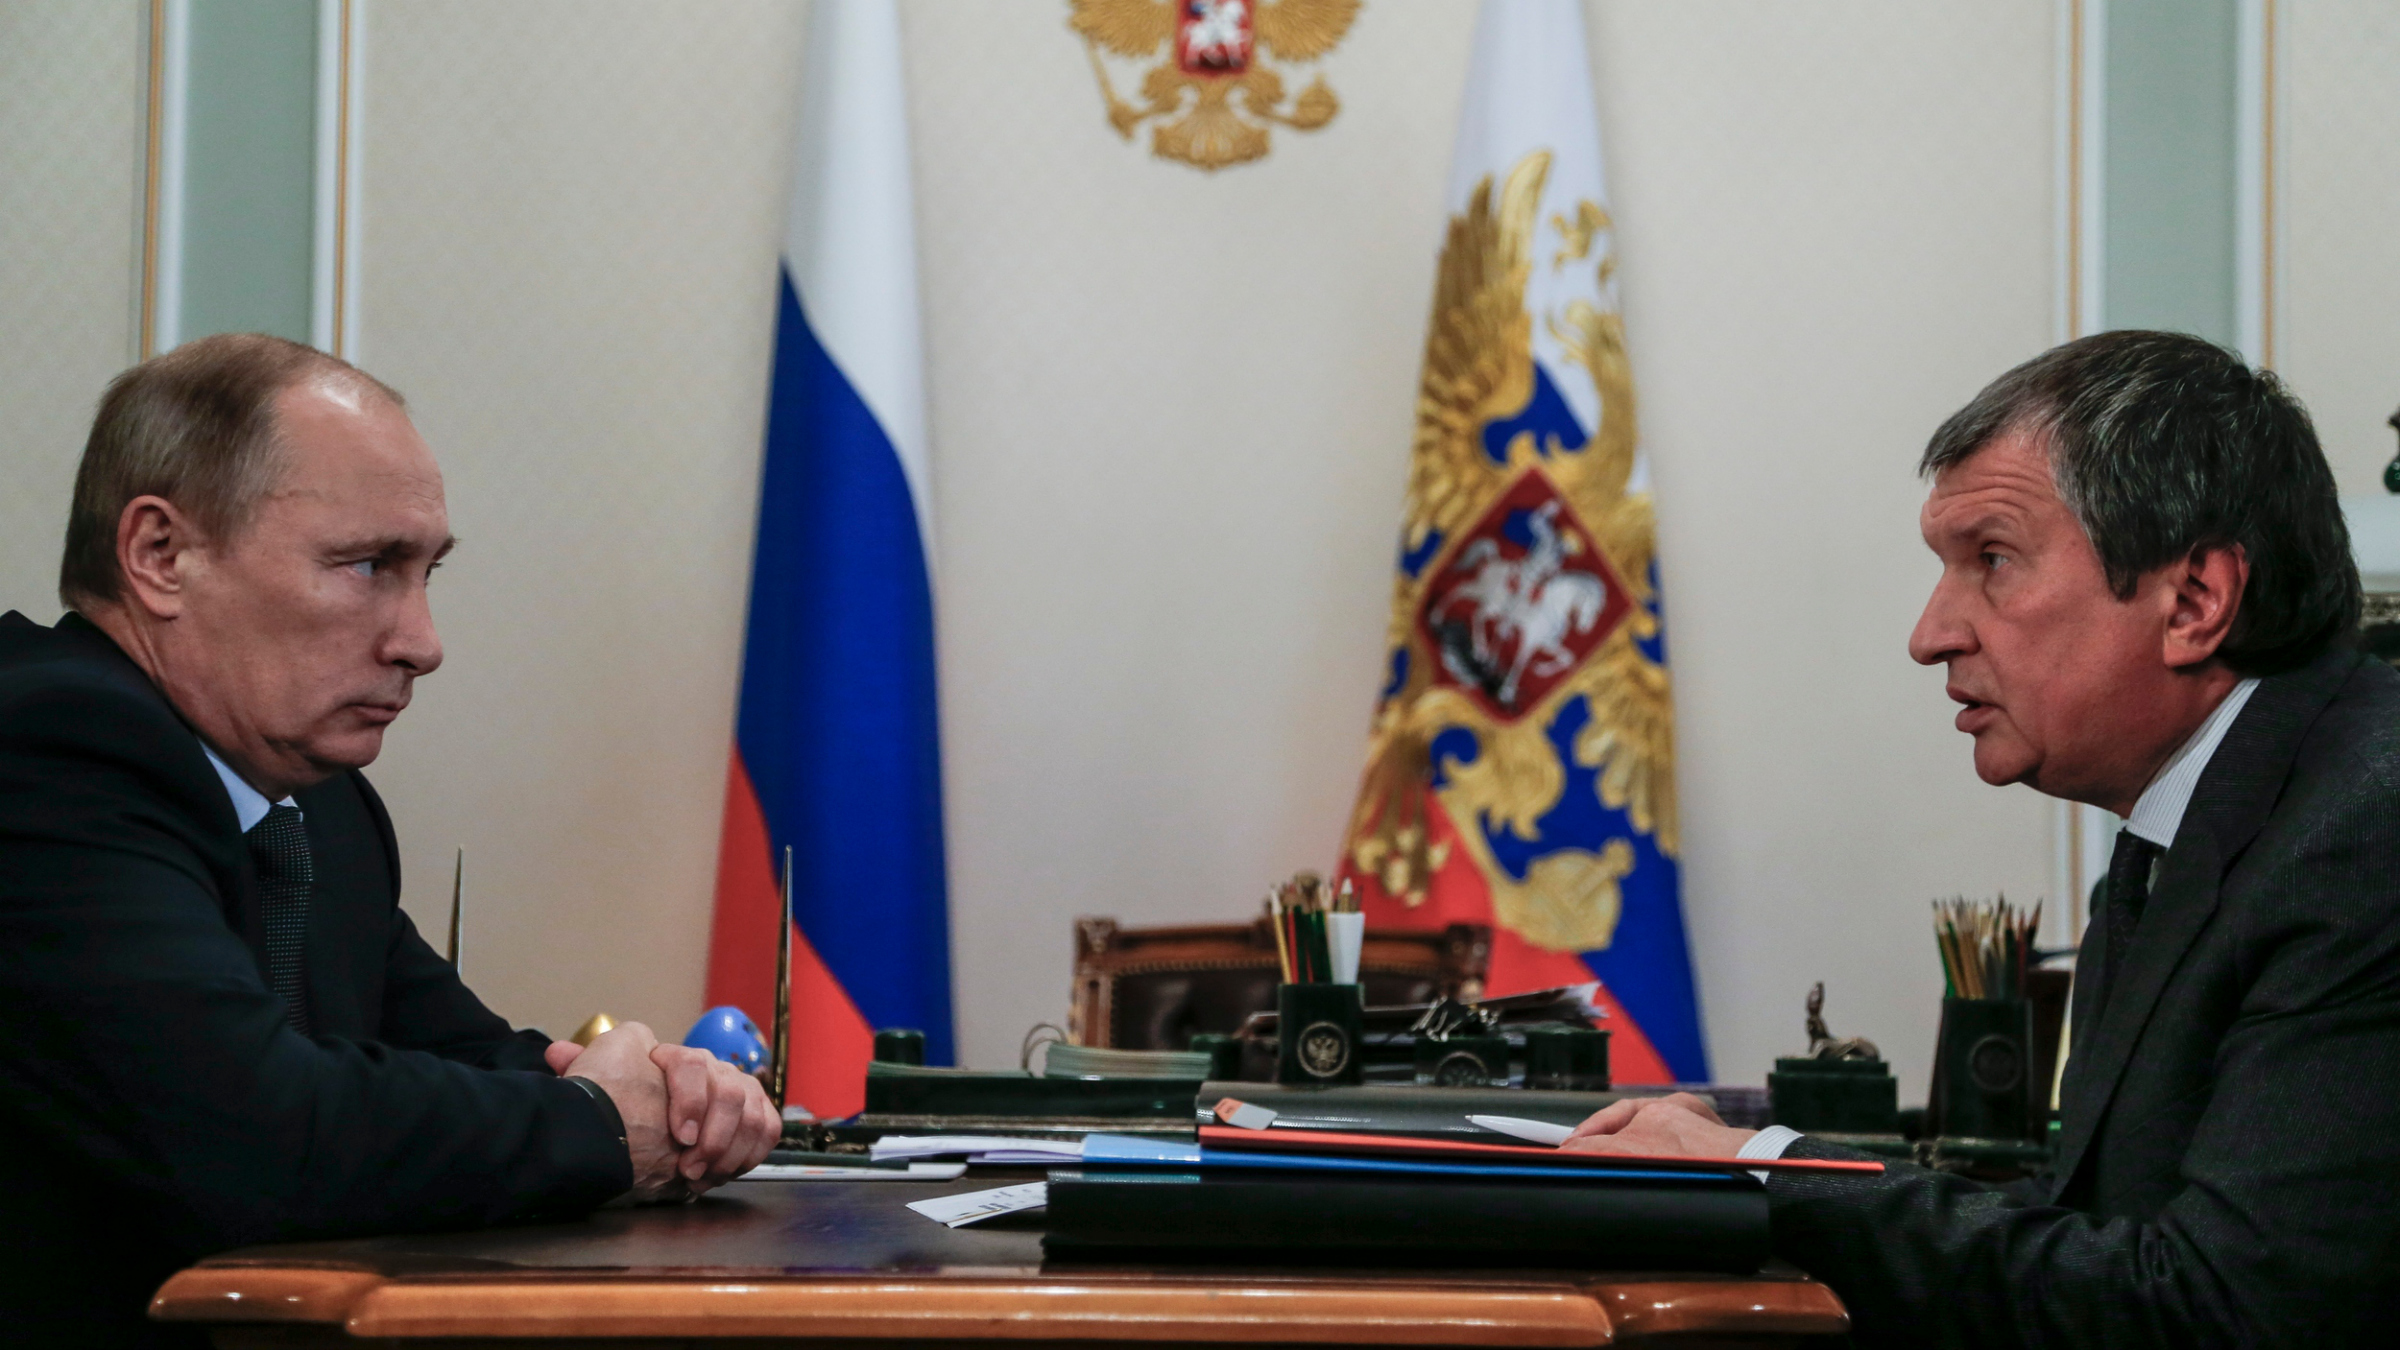 Russian President Vladimir Putin and Rosneft CEO Igor Sechin